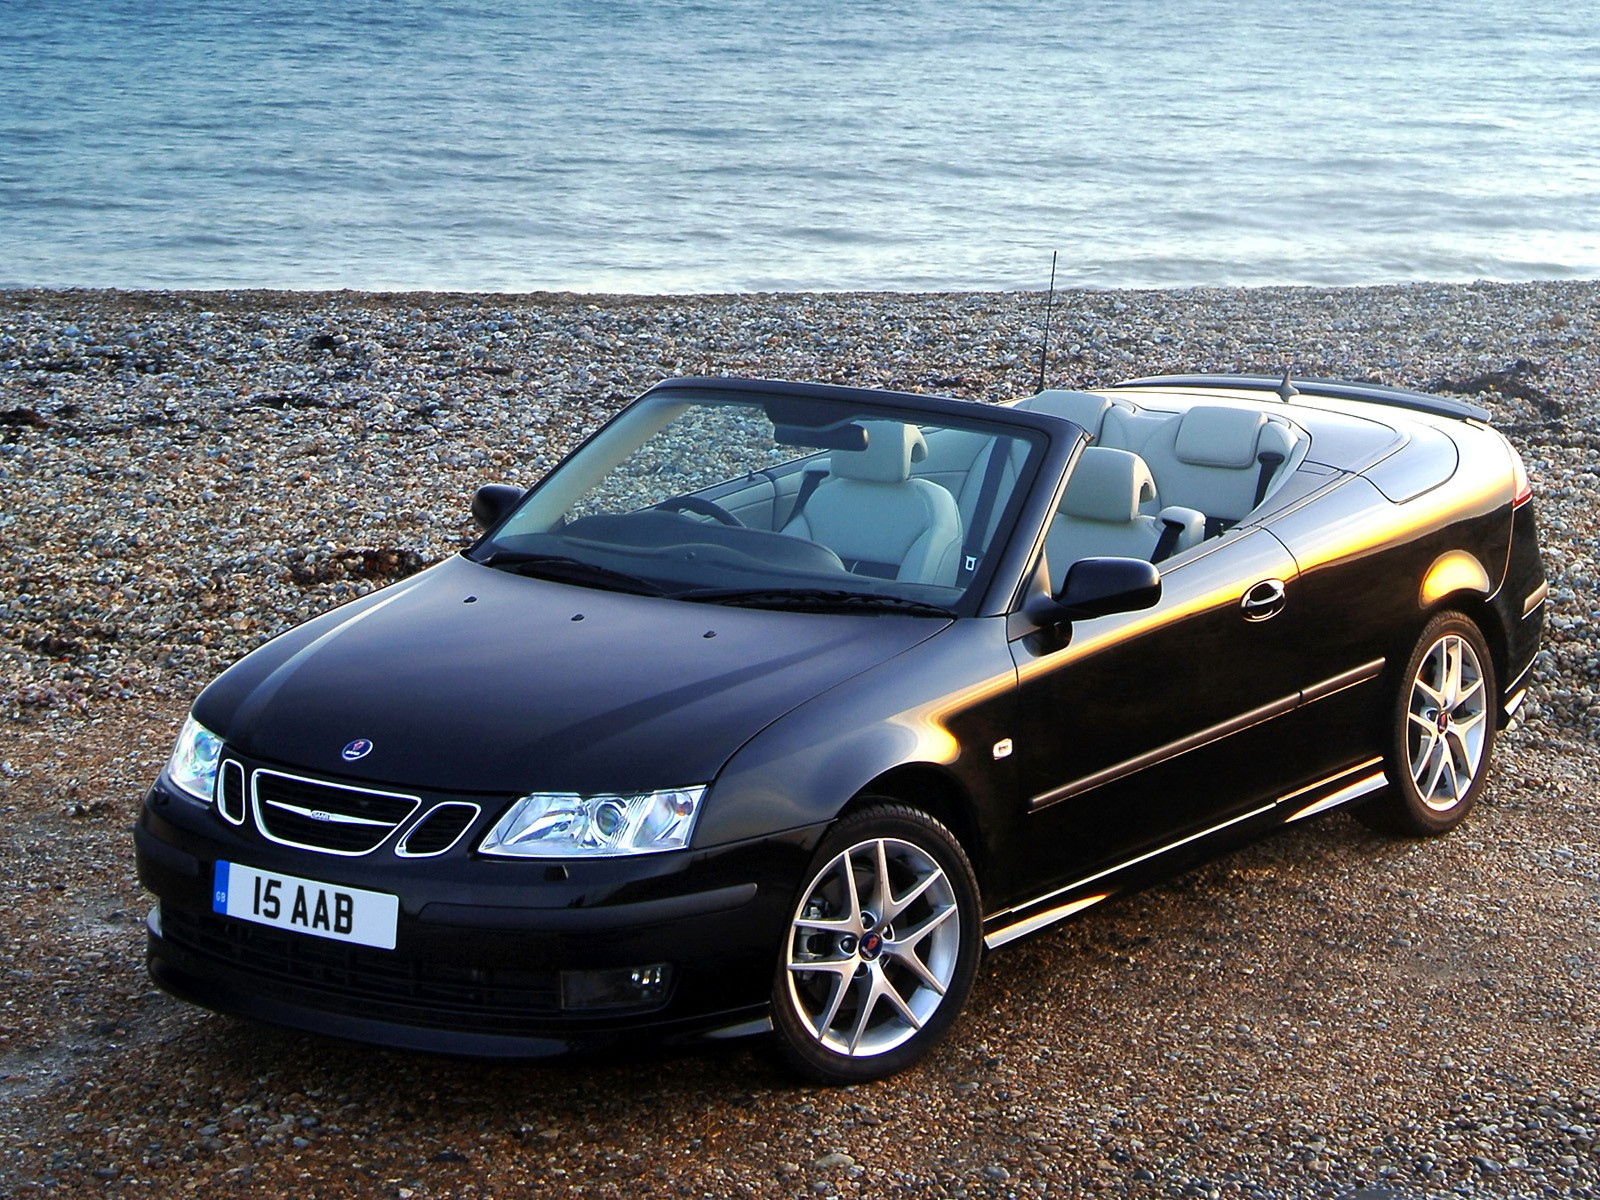 saab 9 3 aero convertible specs 2003 2004 2005 2006. Black Bedroom Furniture Sets. Home Design Ideas